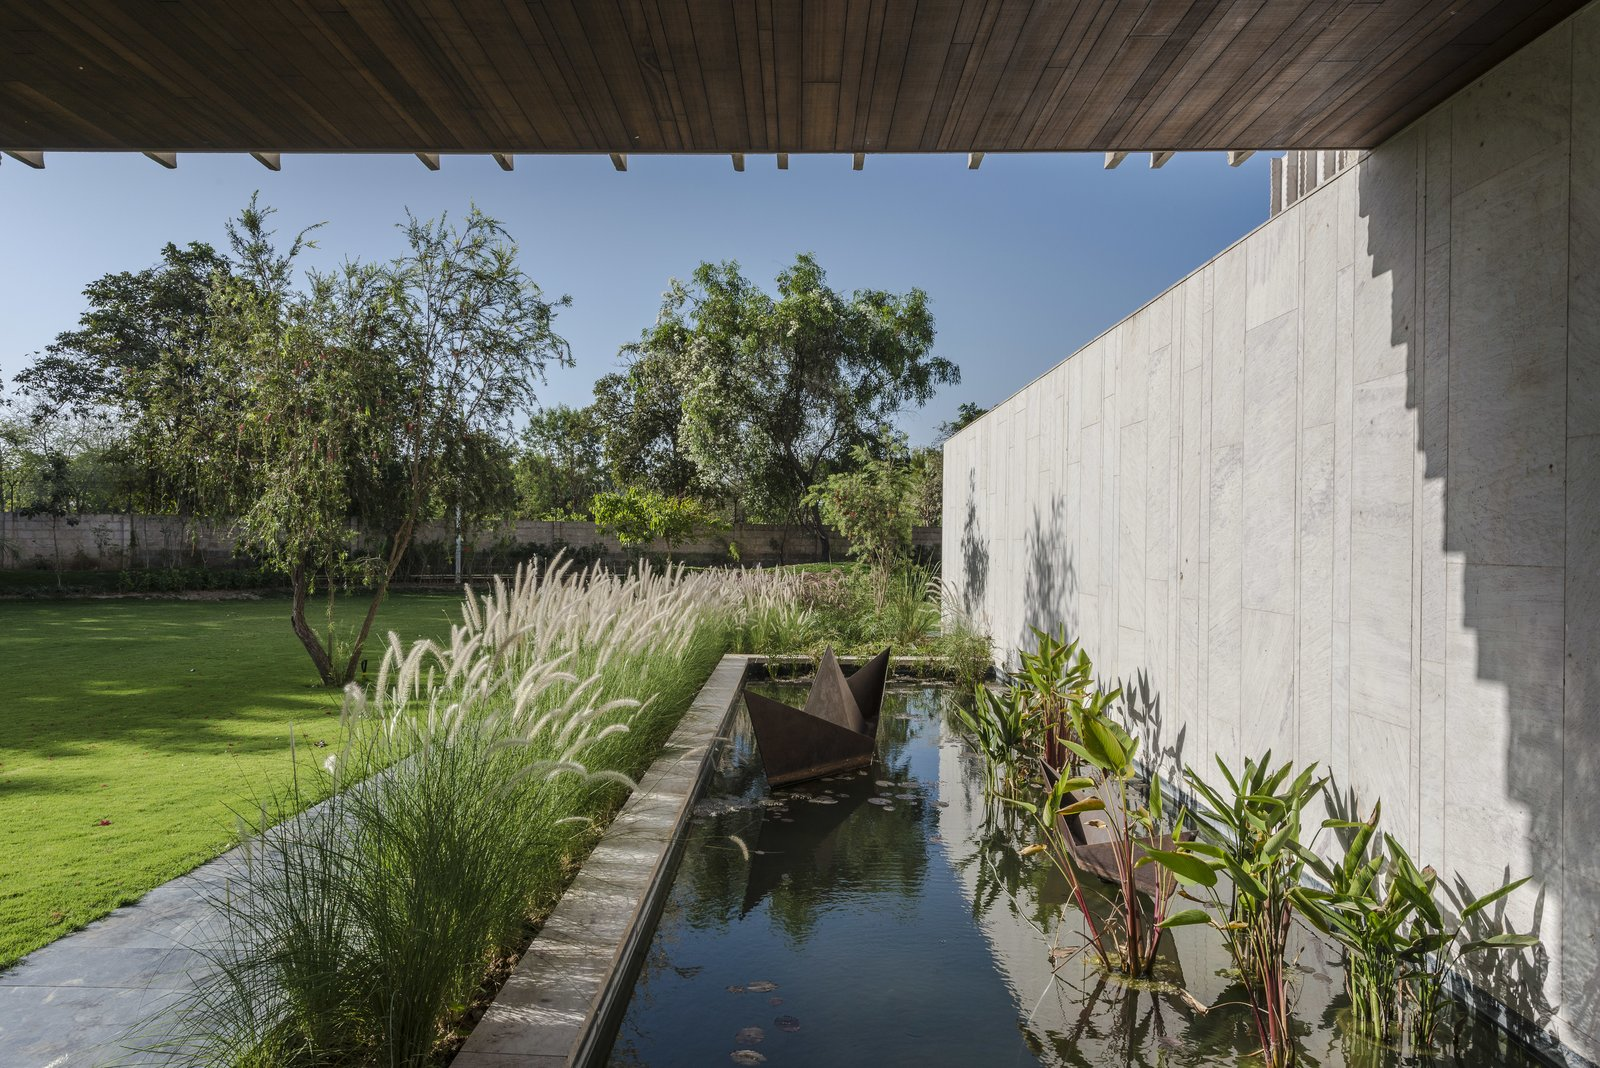 The House of Secret Gardens by SPASM Design Gardens